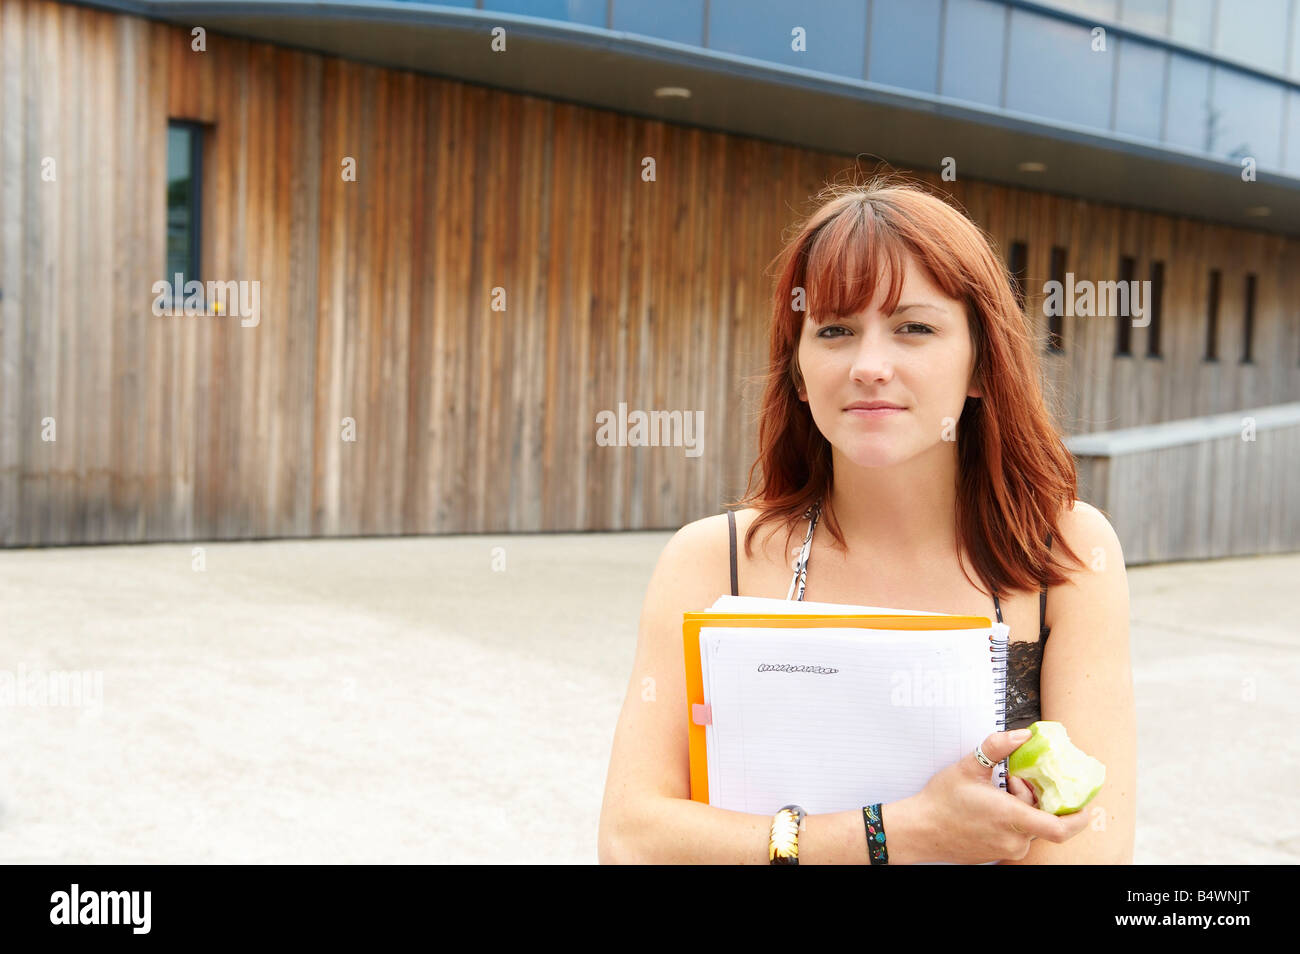 Portrait of a young student - Stock Image